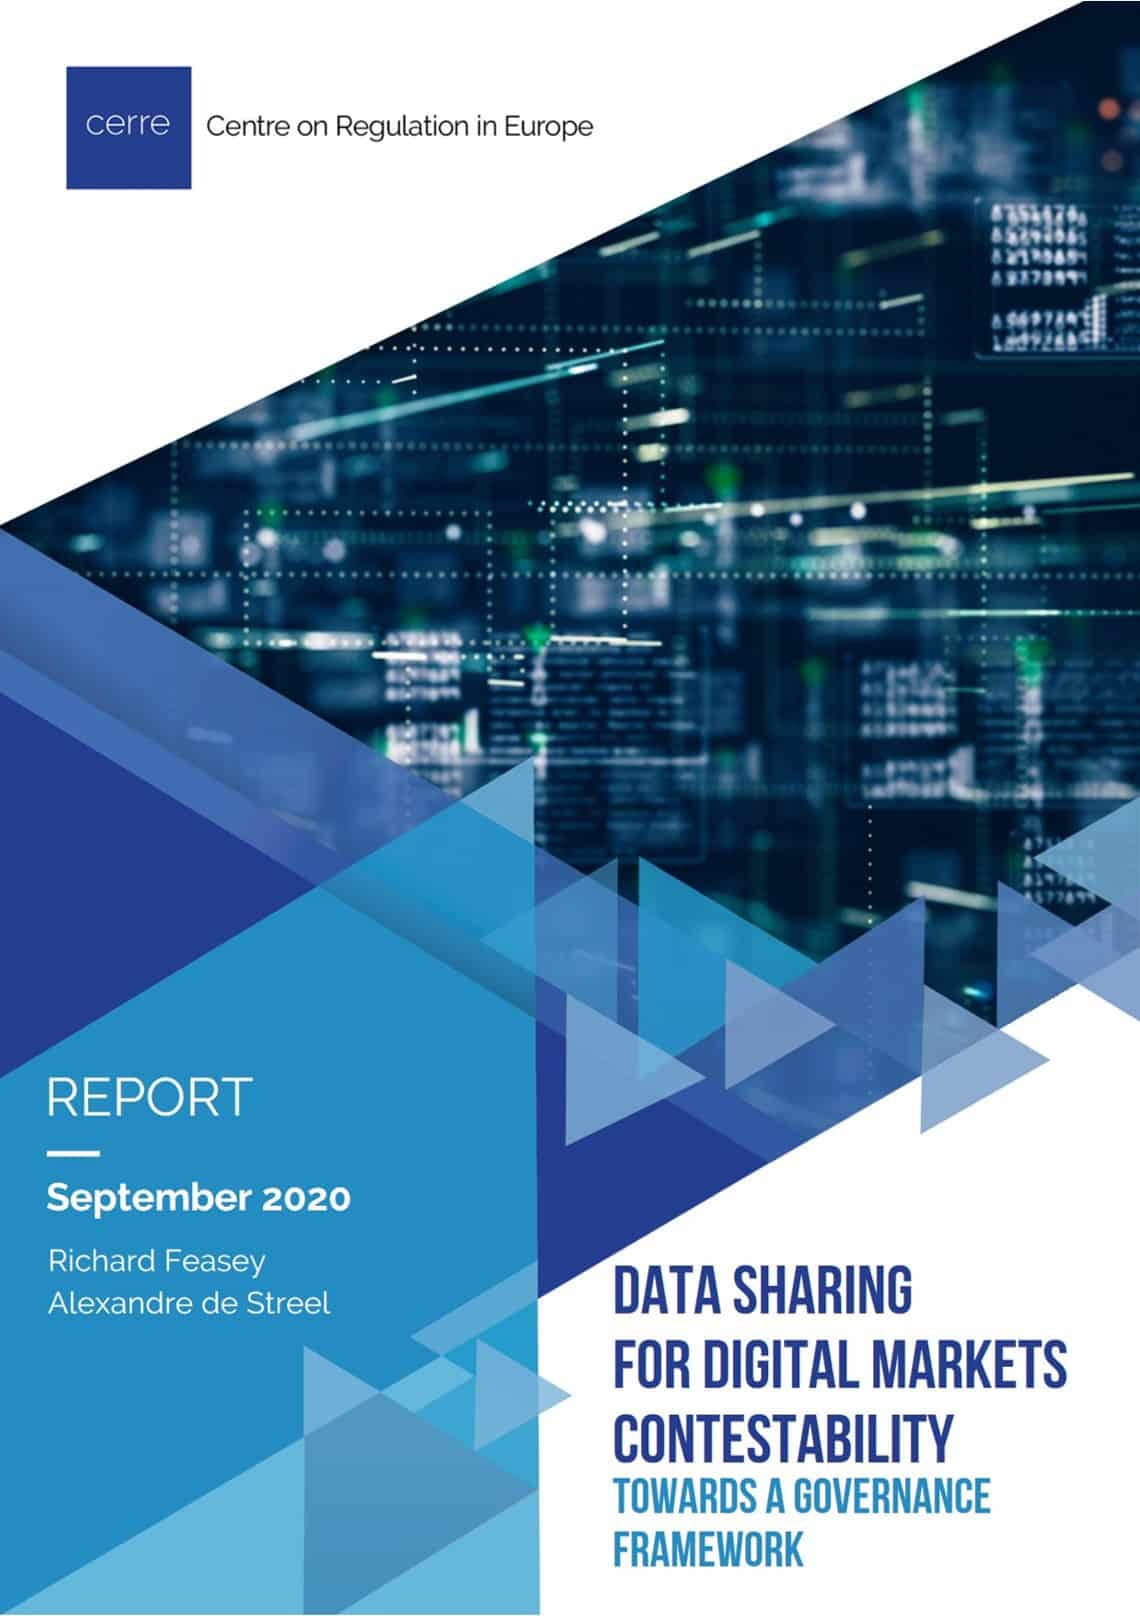 Data sharing for digital markets contestability: towards a new governance framework